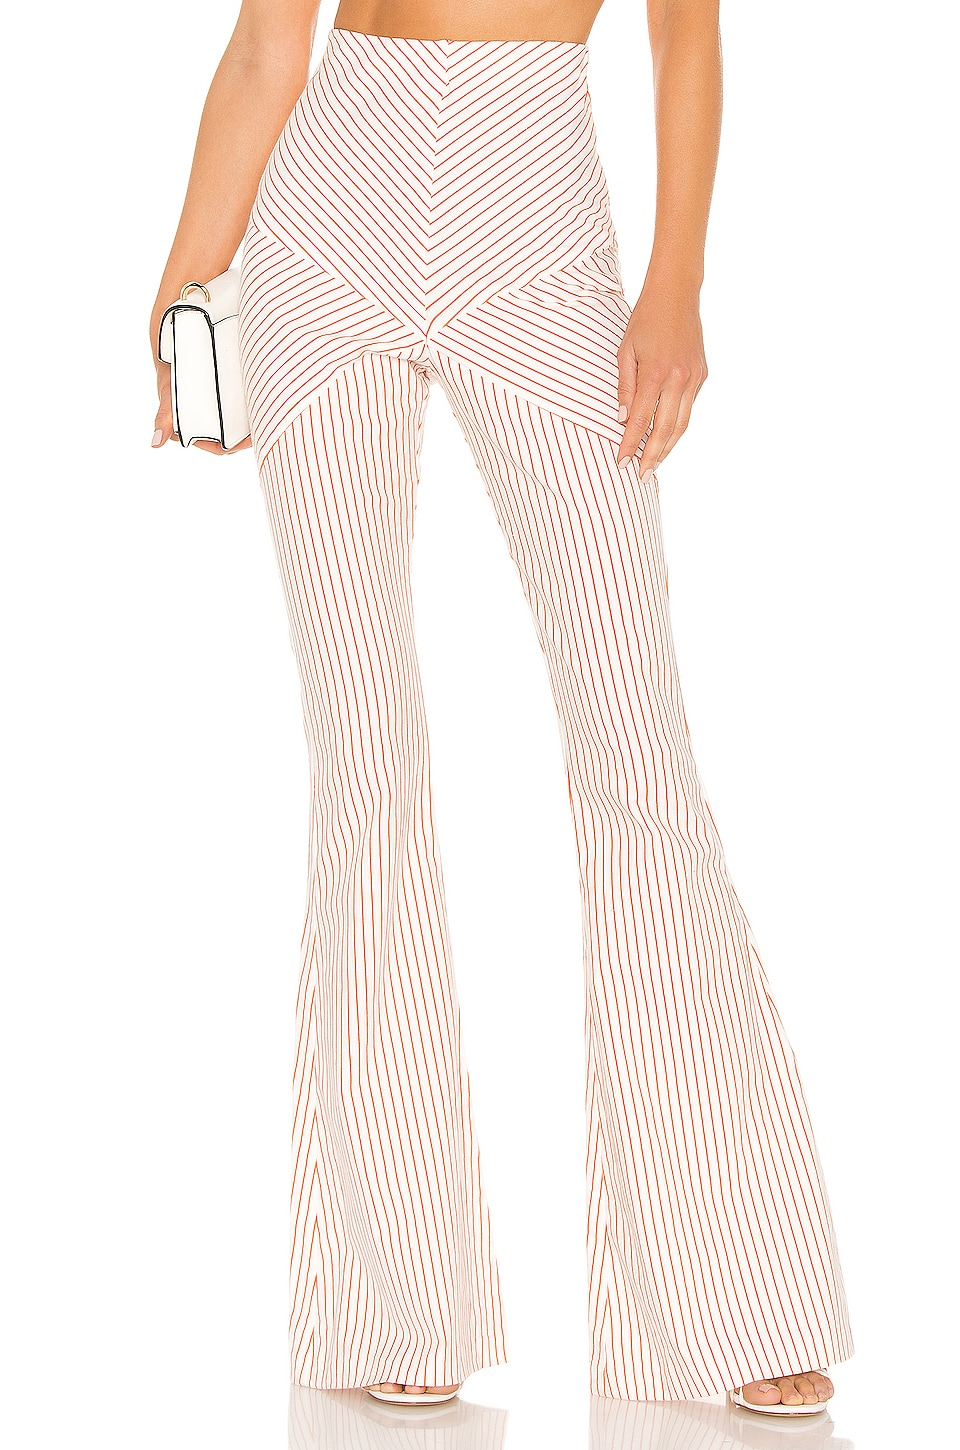 Michael Costello x REVOLVE Cassandra Pant in Orange Stripe